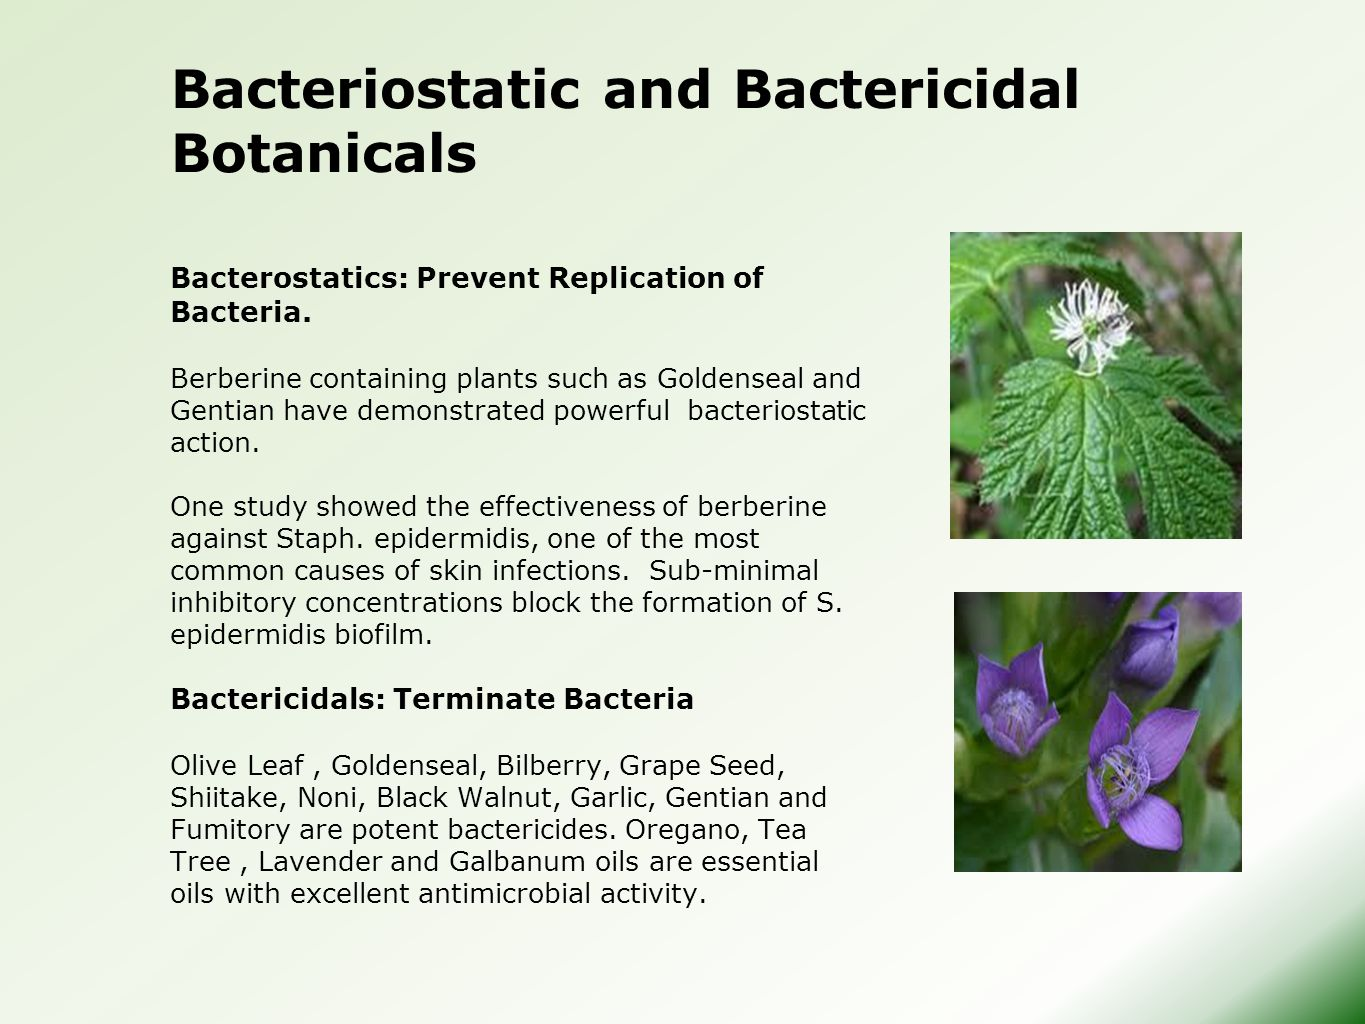 Bacteriostatic and Bactericidal Botanicals